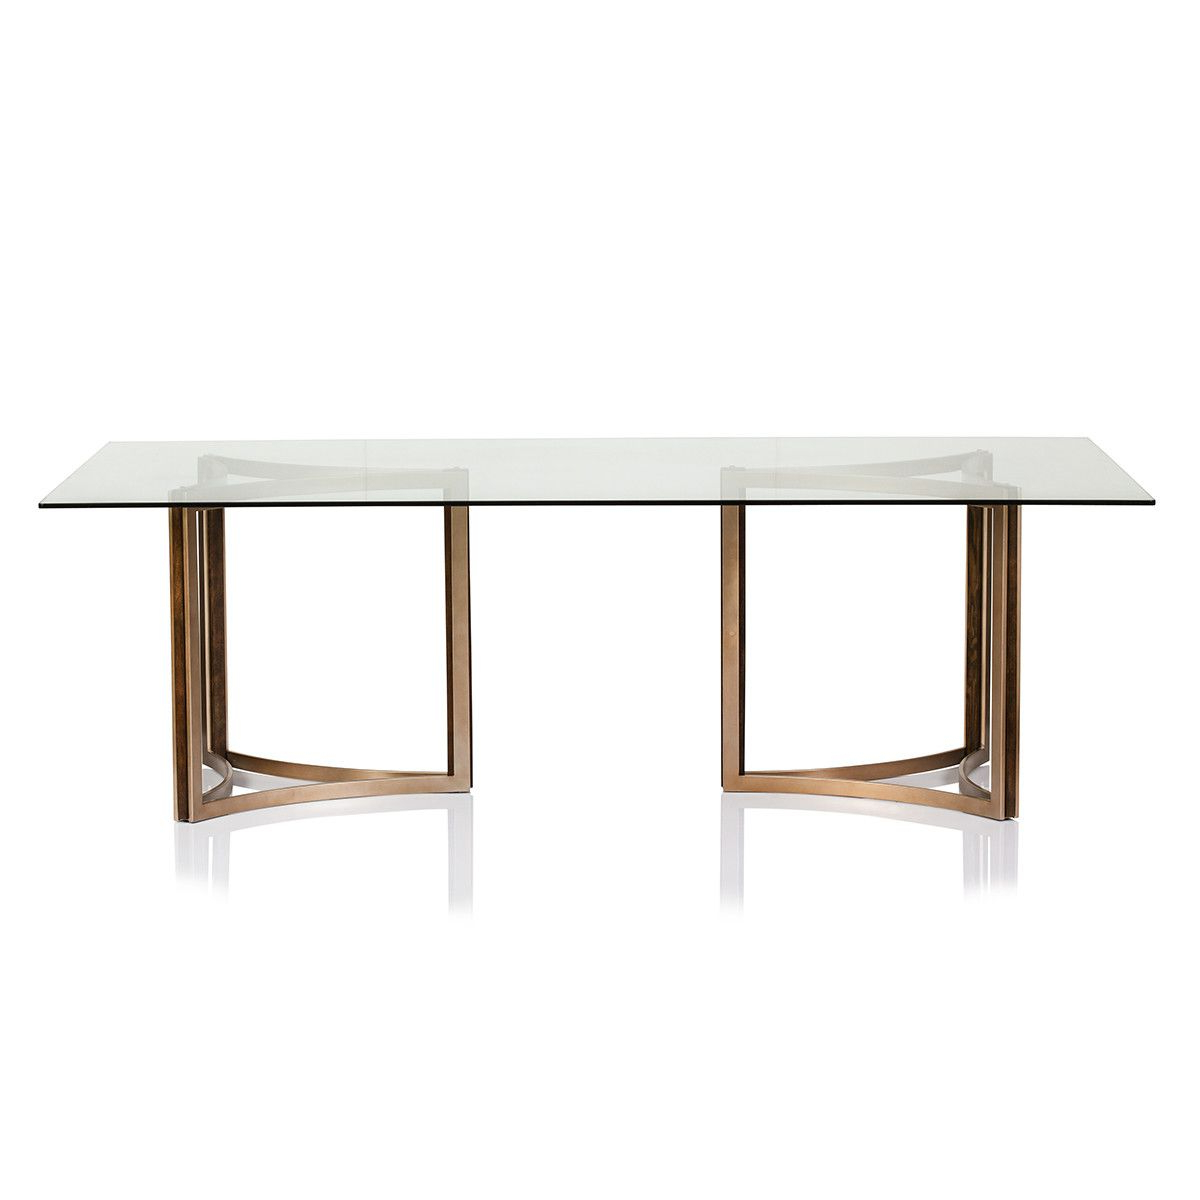 Preferred Fumed Oak Dining Tables In Manhattan Glass Top Dining Table (View 13 of 25)